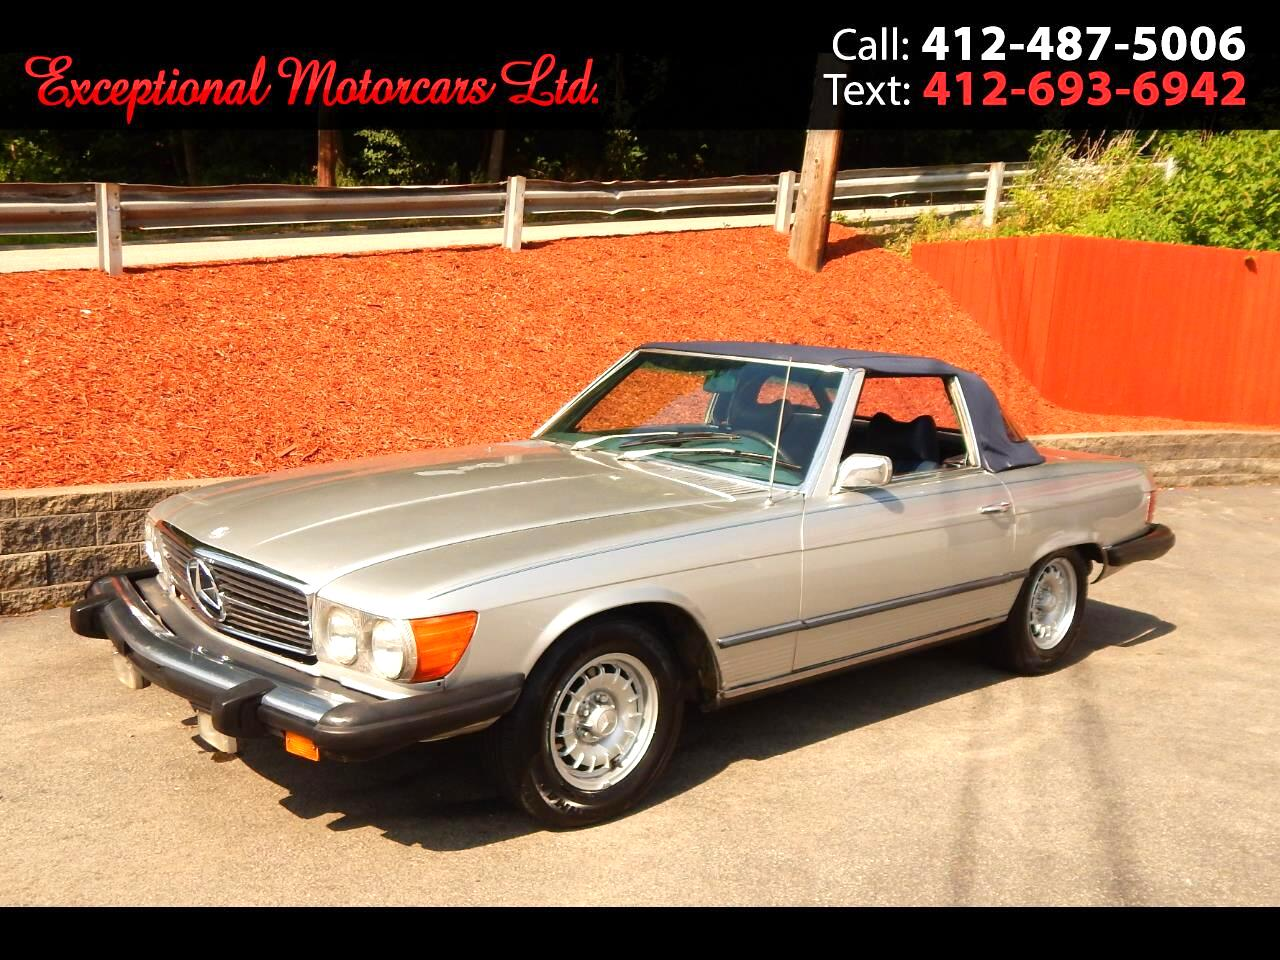 1974 Mercedes-Benz 450 SL Convertible